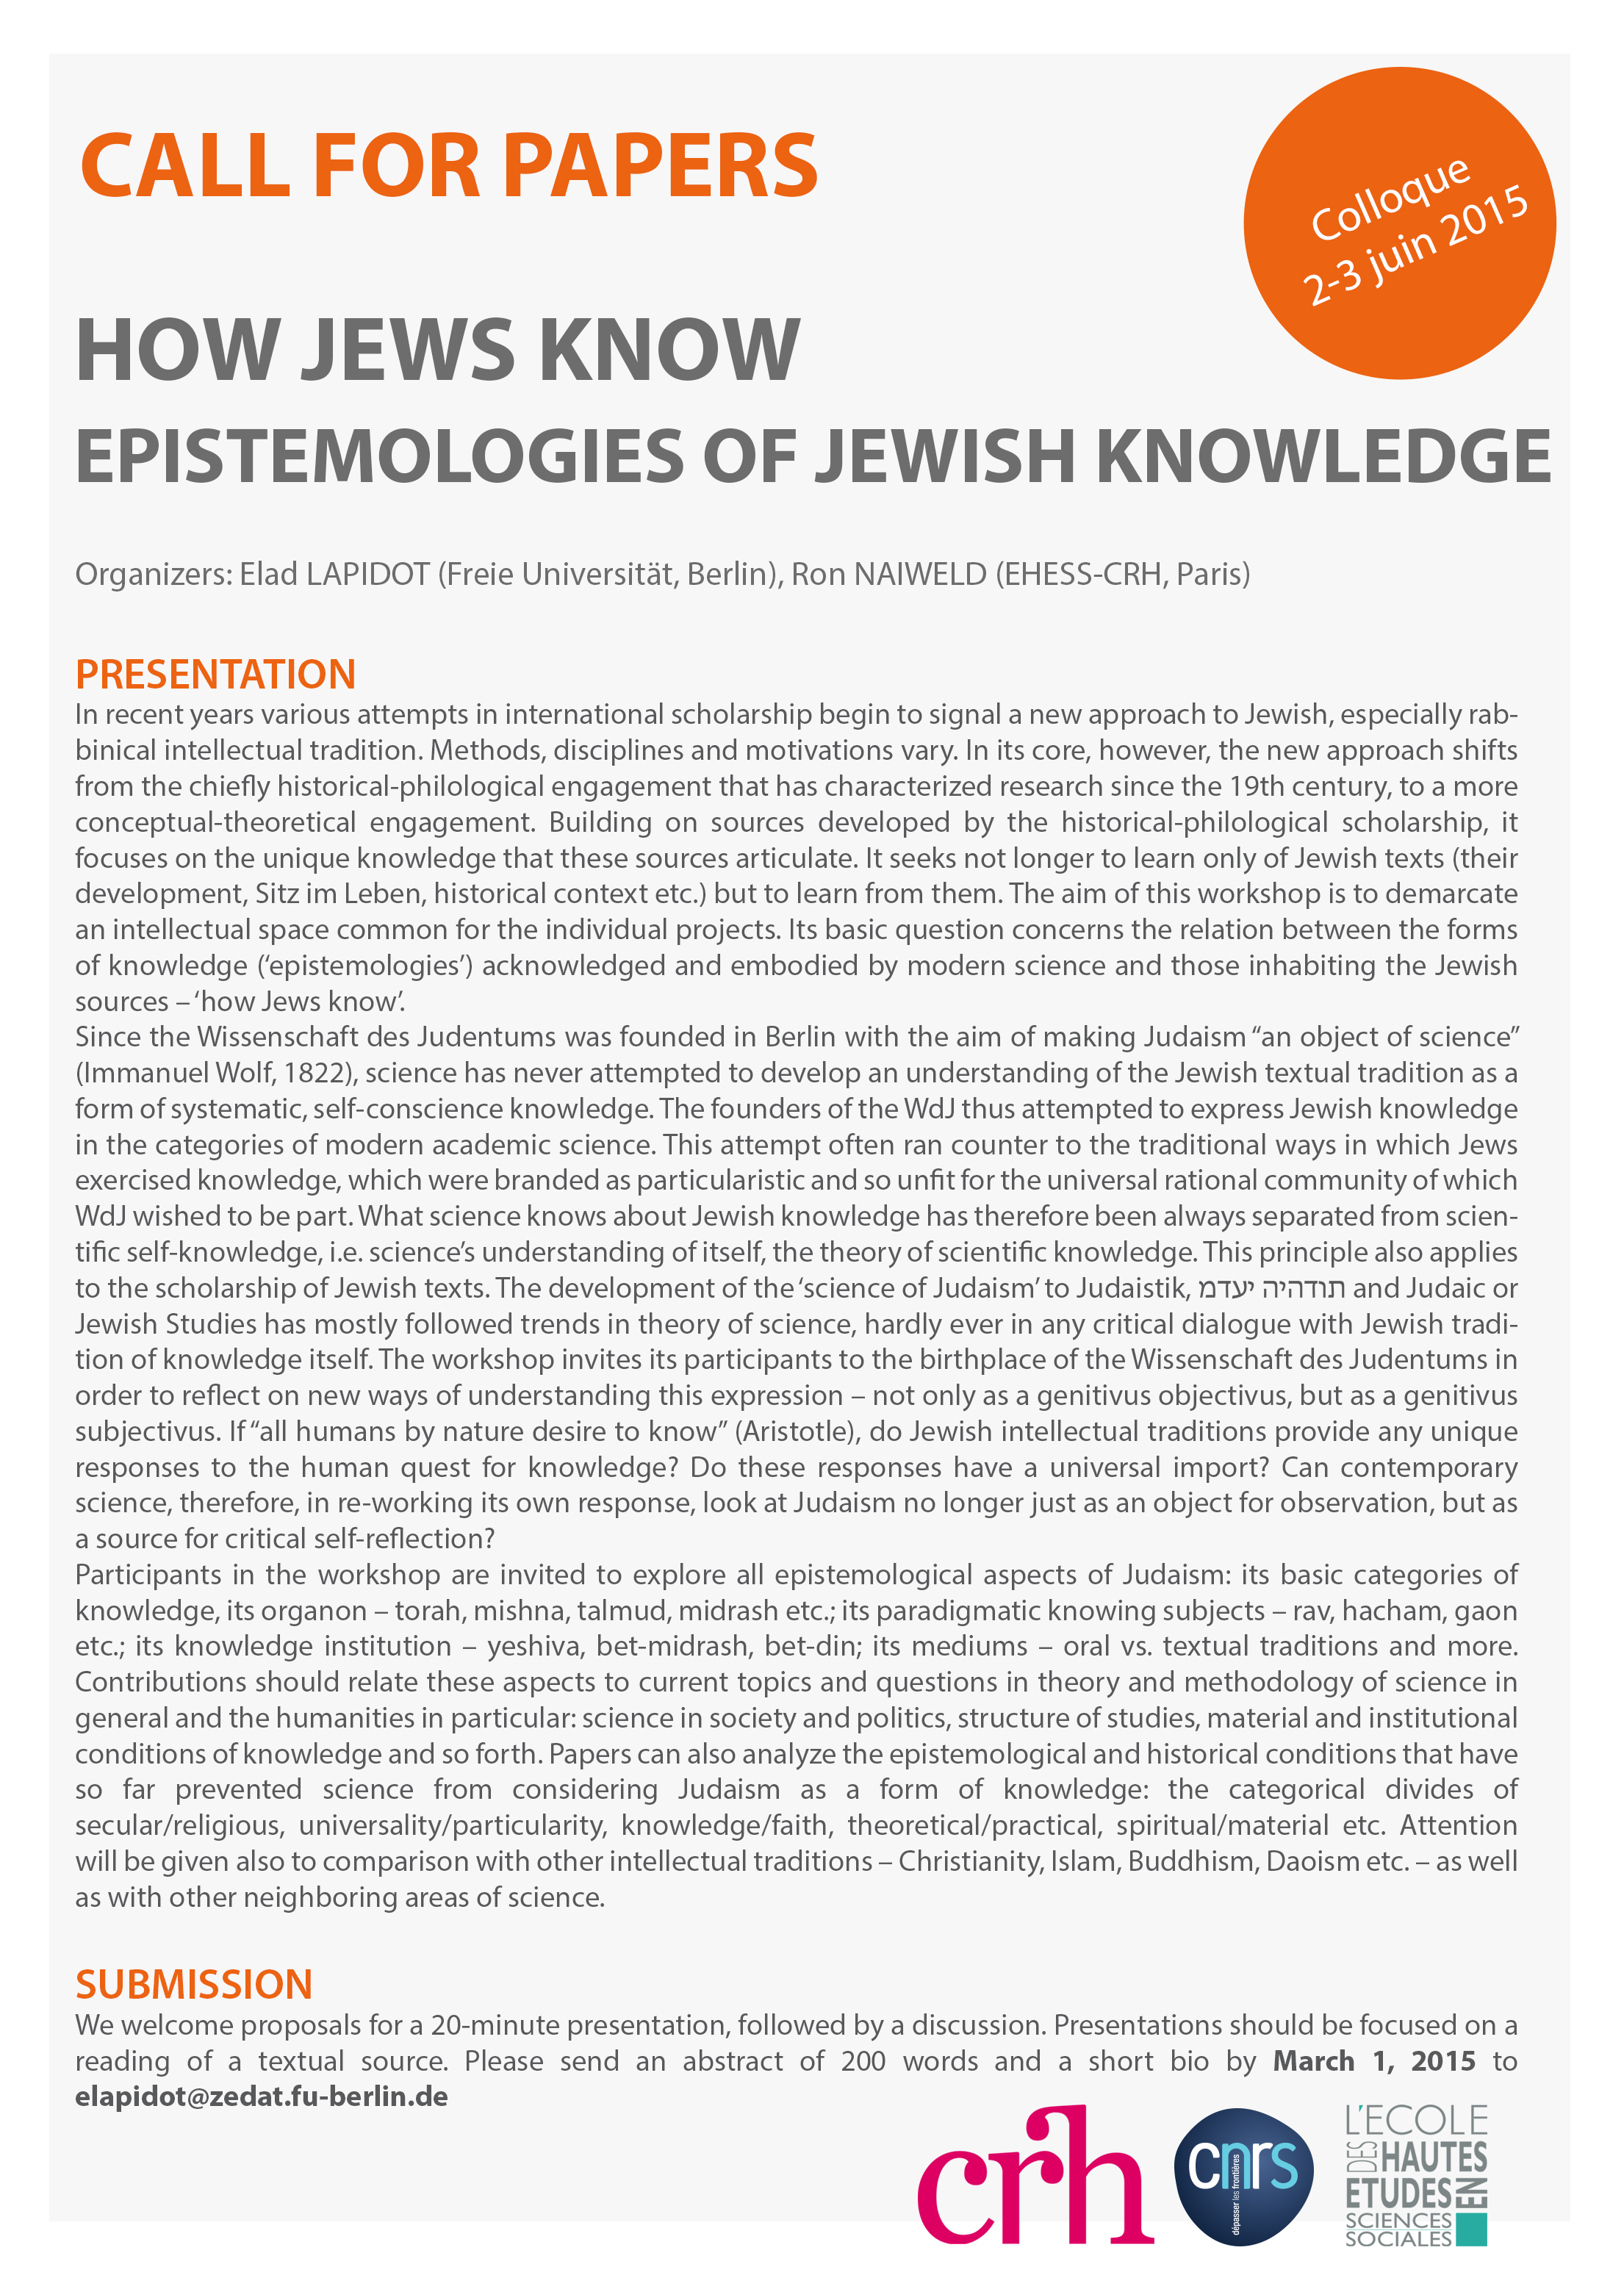 How Jews Know Epistemologies of Jewish Knowledge